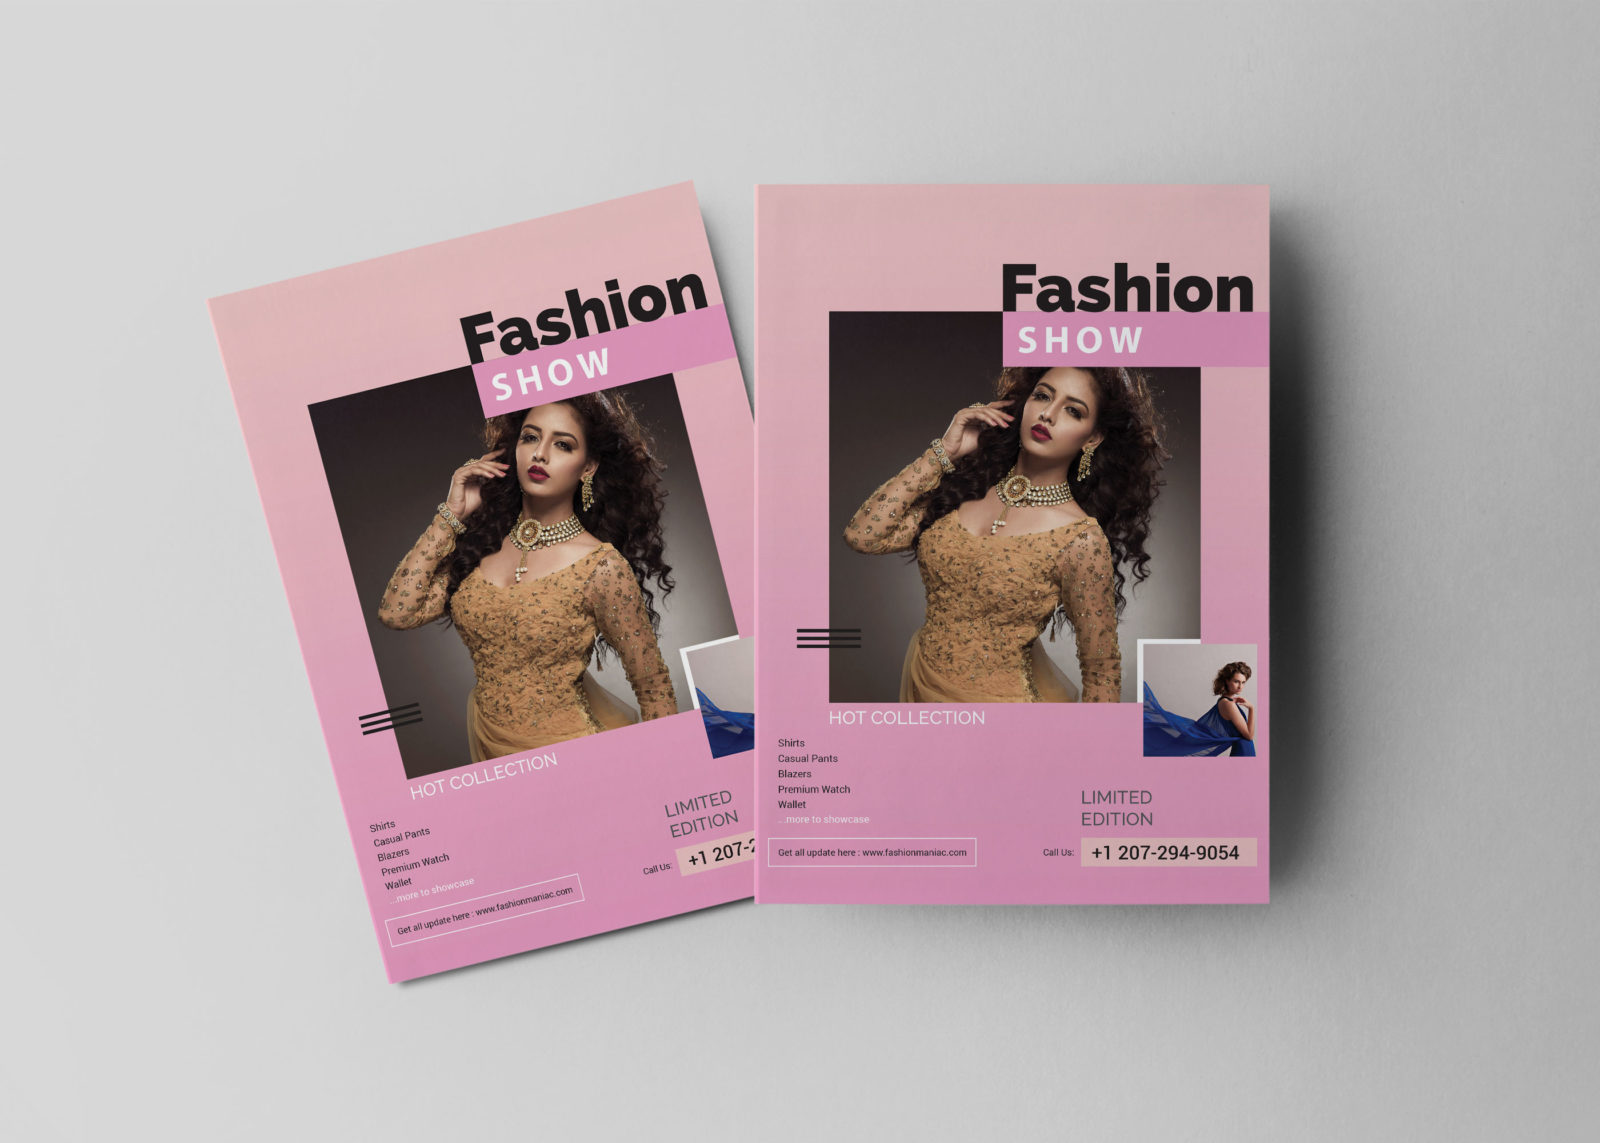 Fashion Show Flyer Design Template